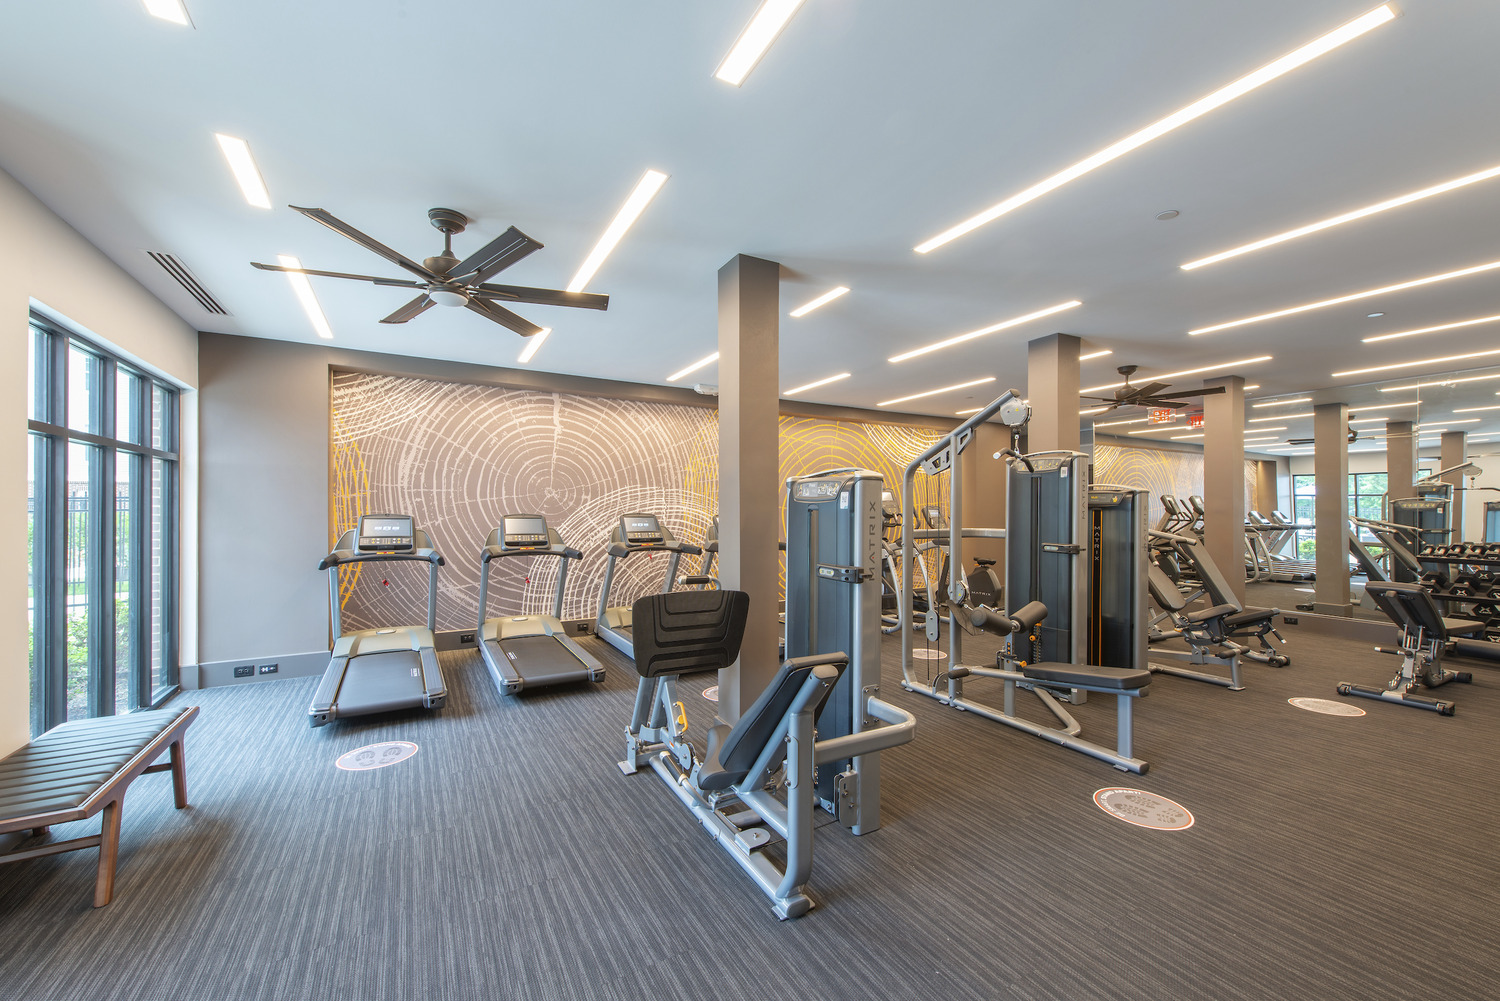 CBG builds The Elms at Century, a 300-Unit Market-Rate Apartment Community with Amenities in Germantown, MD - Image #6